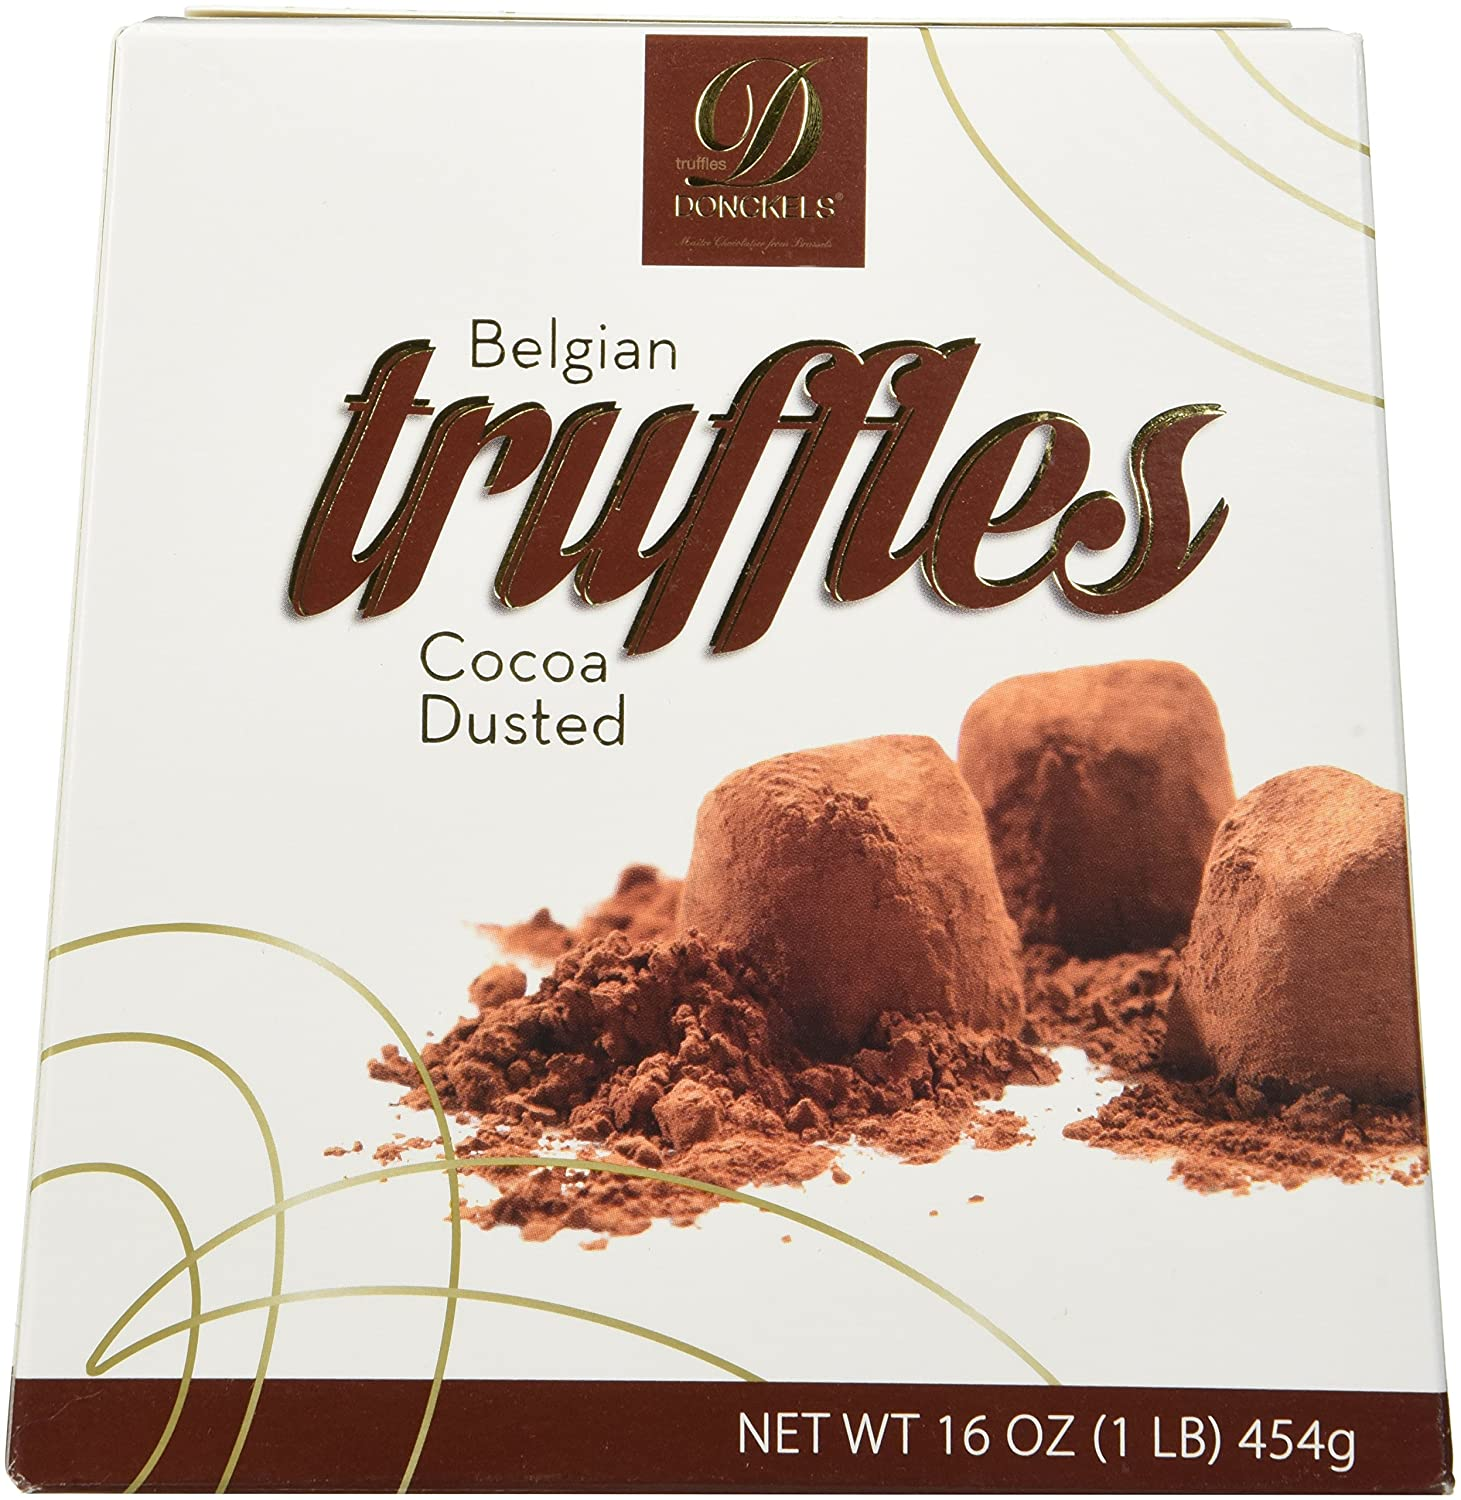 Amazon.com : Donckels Cocoa Dusted Belgian Chocolate Truffles - 1 ...